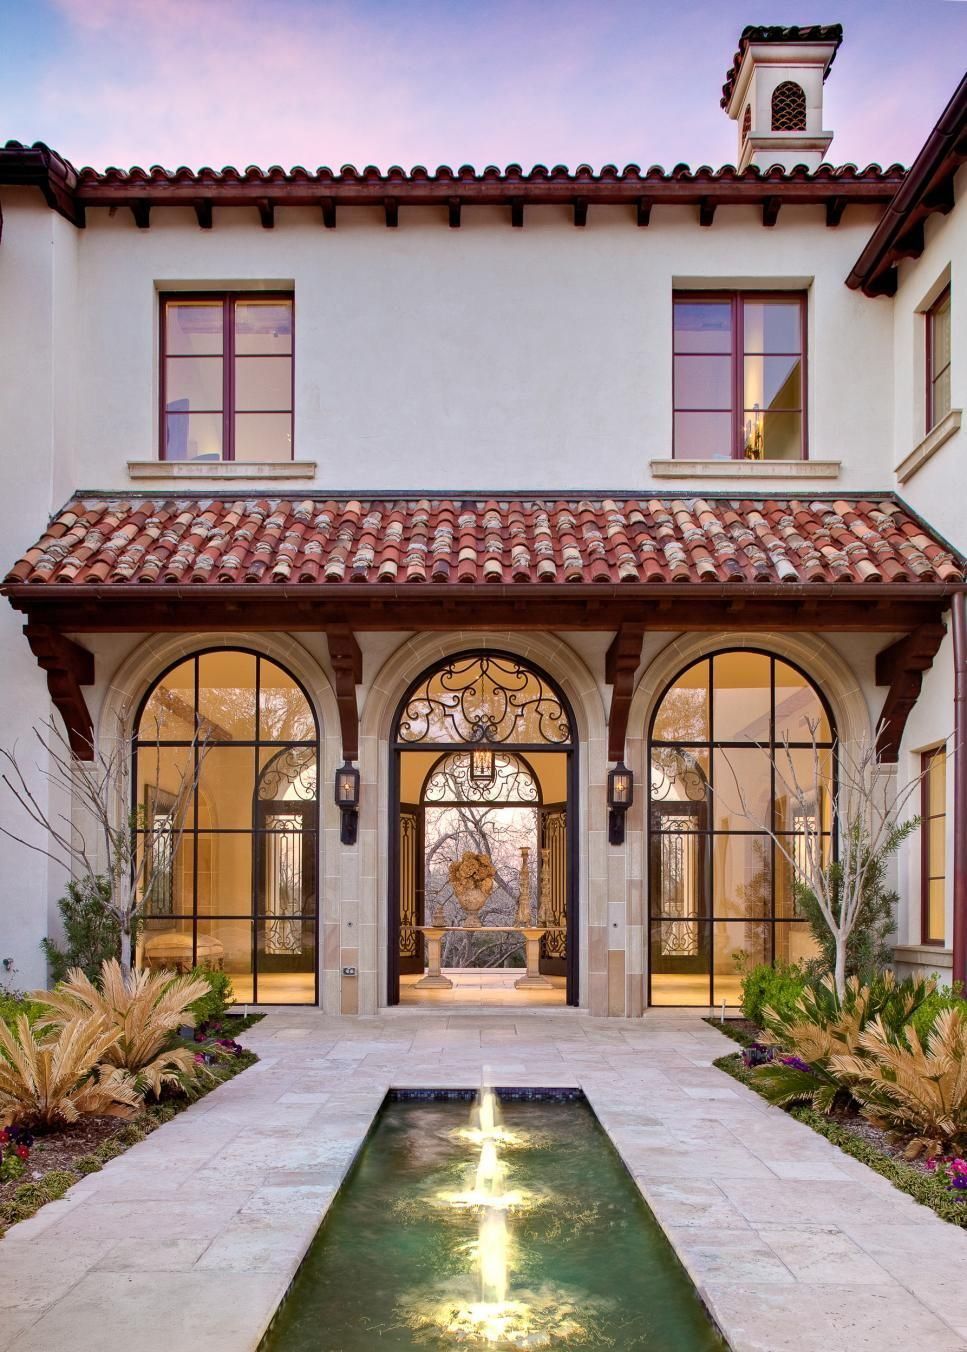 Inspiring Examples Of How To Turn A Traditional Enclosure Into A Dream Landscape From Hgtv Gardens In 2020 Spanish Style Homes Mediterranean Homes Spanish House